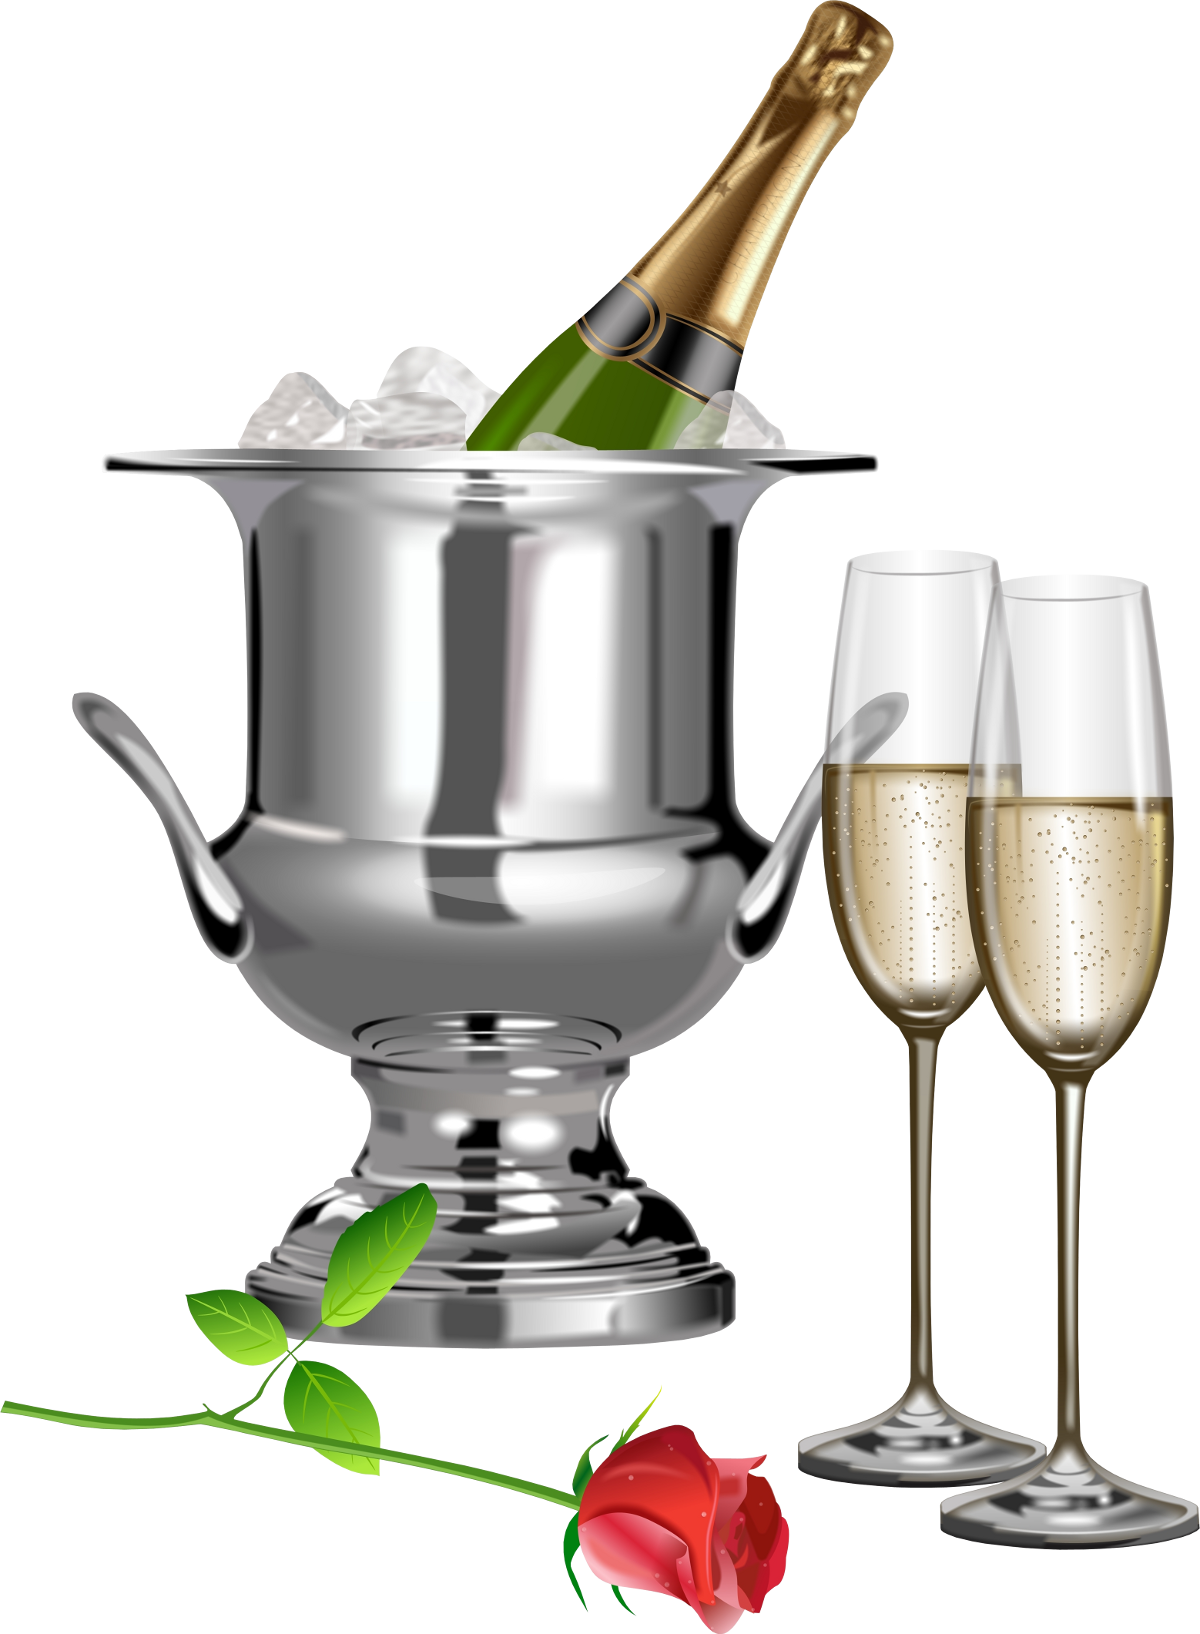 Champagne_Champagne_Flutes_and_Rose_Transparent_Clipart.png?m=1366063200.